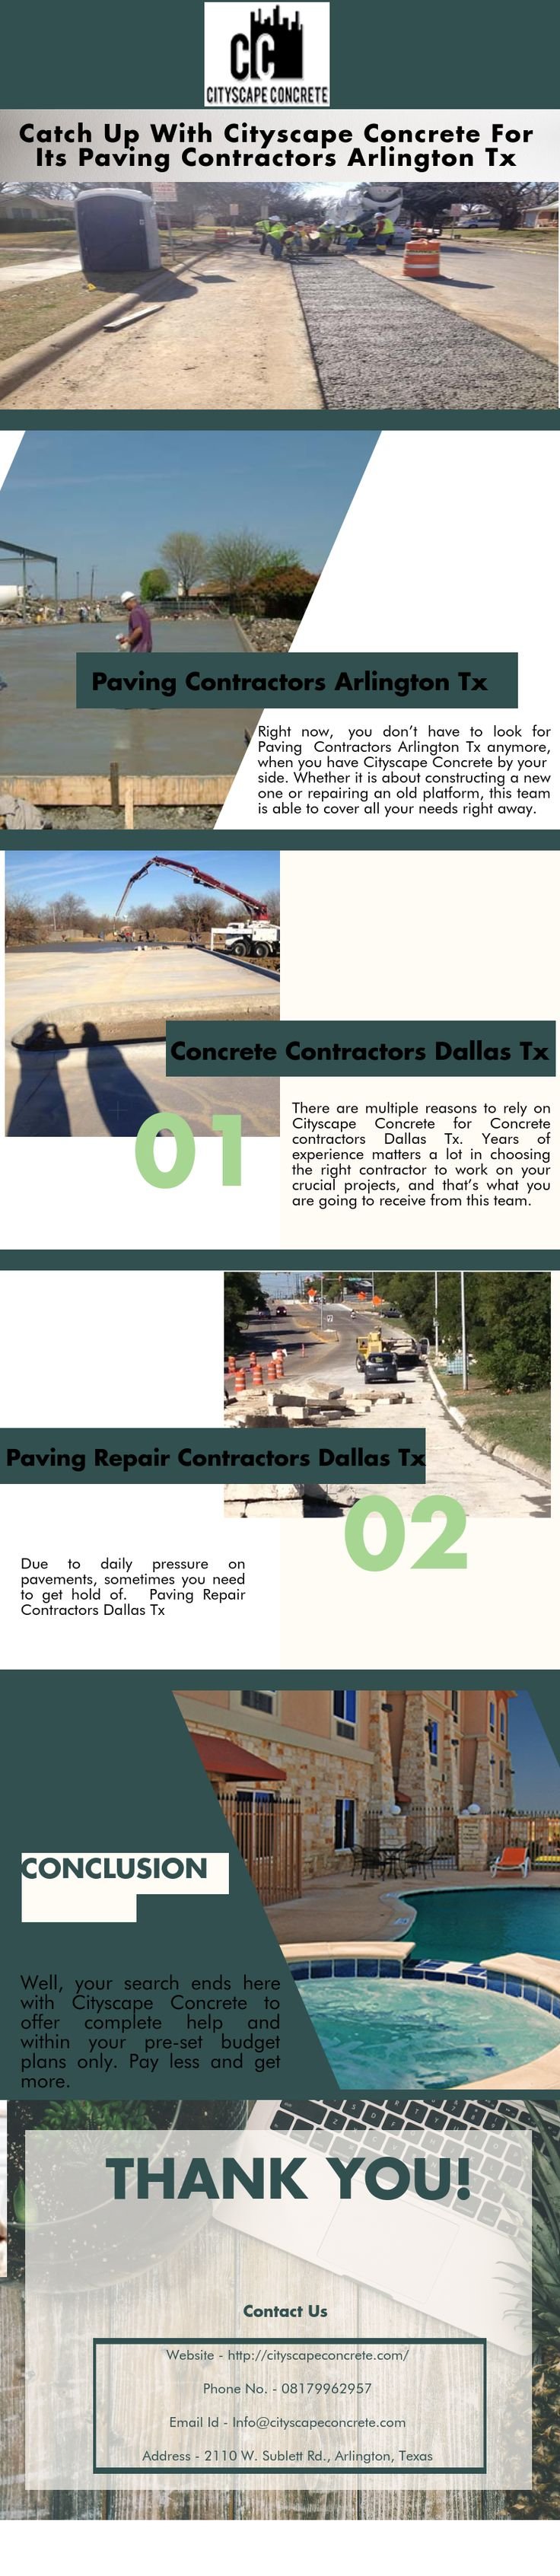 Due to daily pressure on pavements, sometimes you need to get hold of Paving Repair Contractors Dallas Tx. Well, your search ends here with Cityscape Concrete to offer complete help and within your pre-set budget plans only. Pay less and get more.